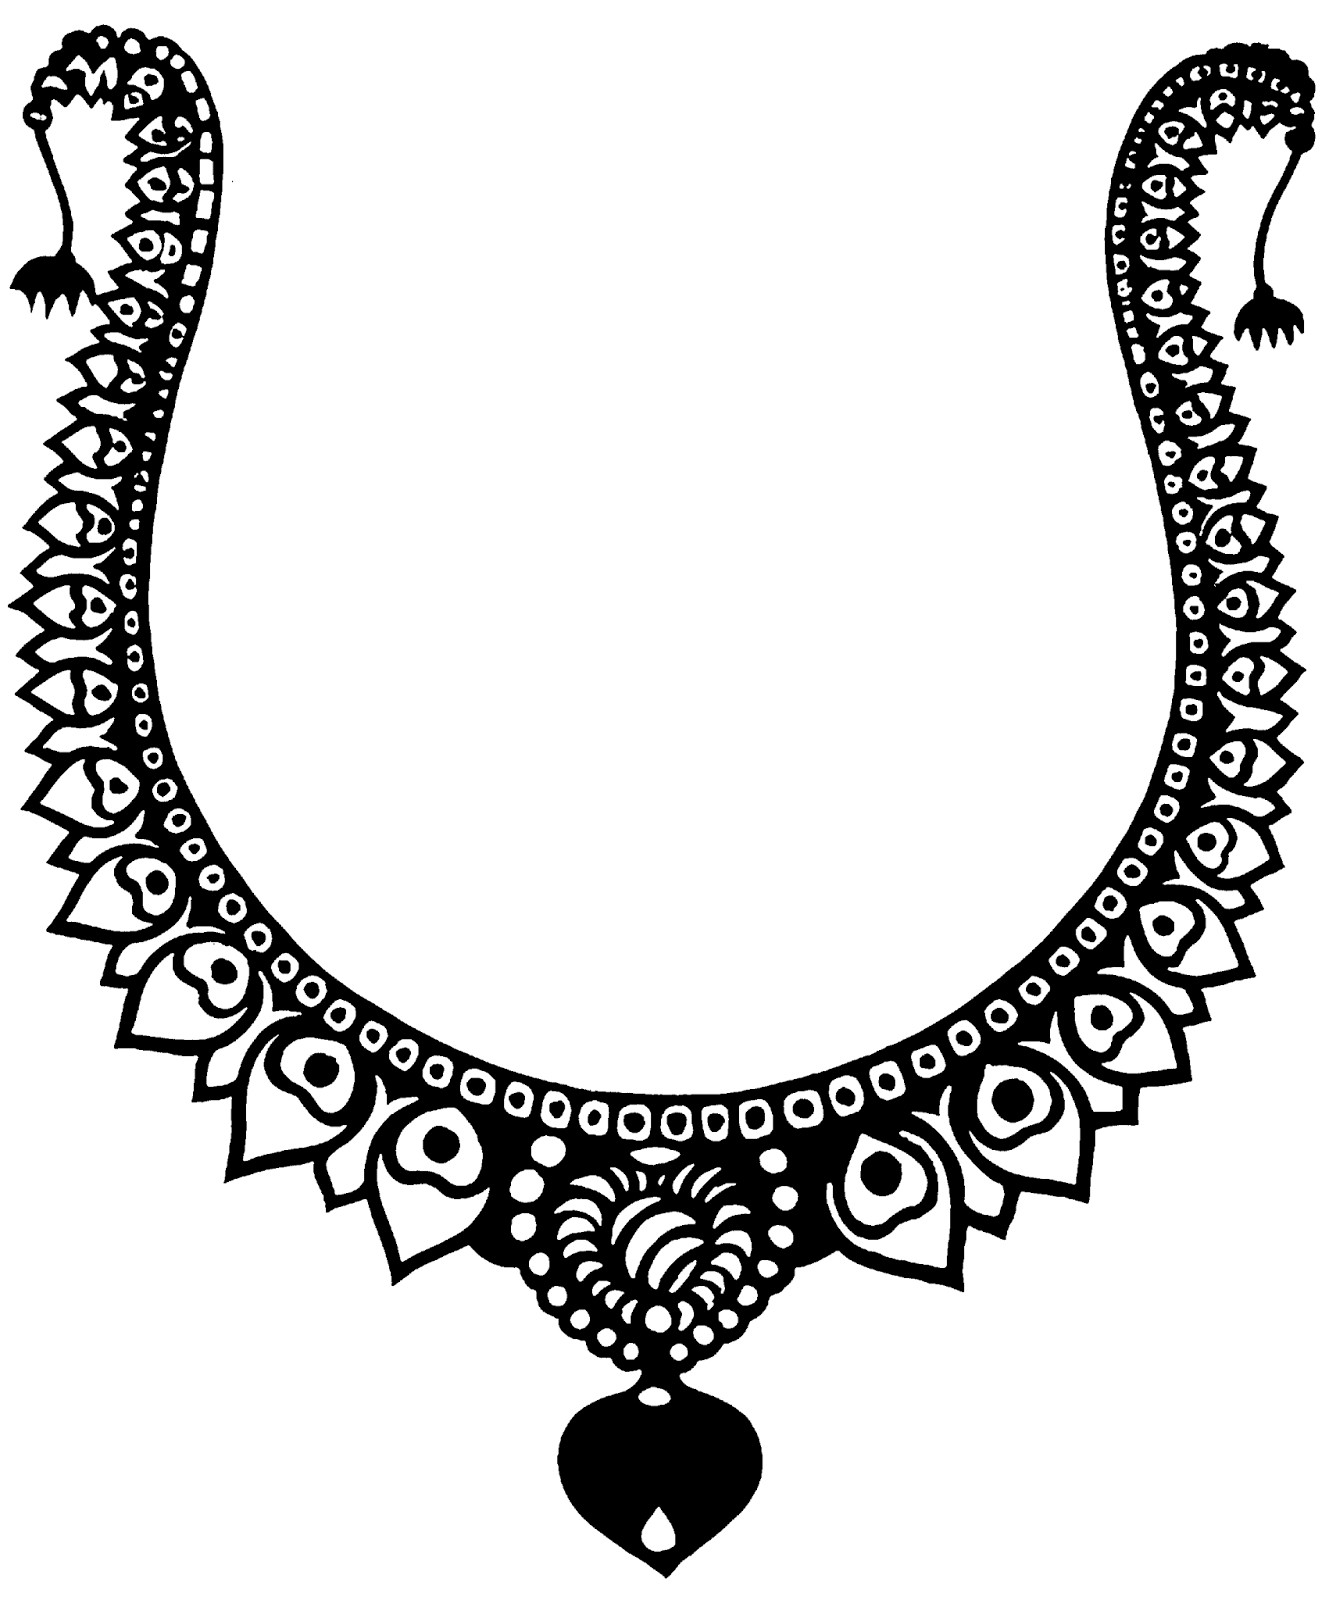 Jewelry clipart Luxury Jewelry Clip Art Black And White Kind Letters.